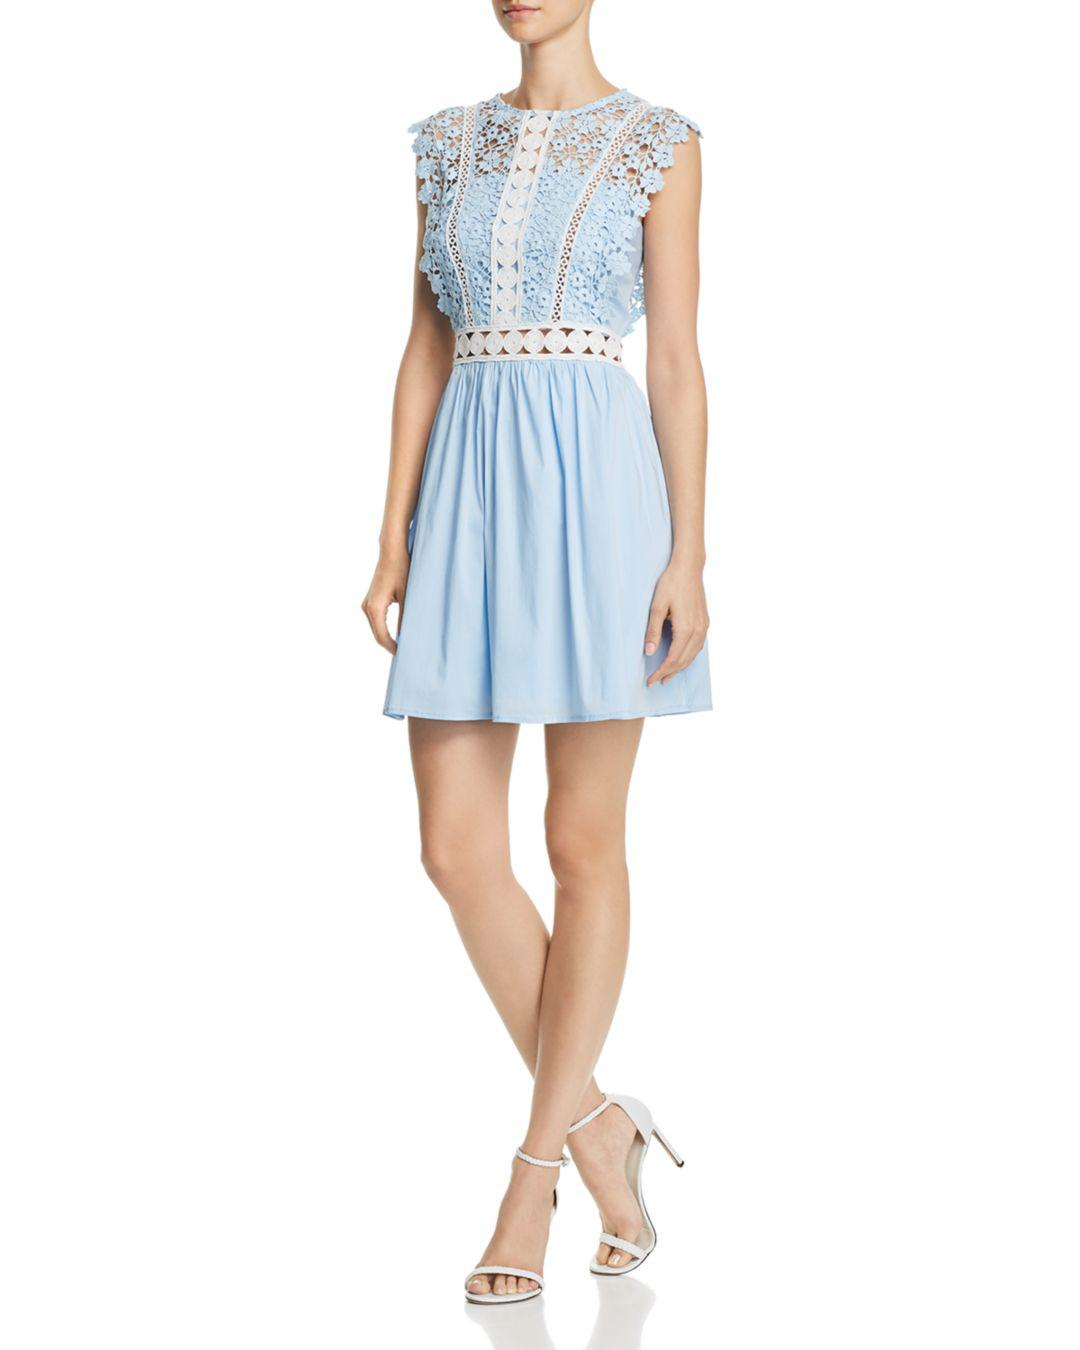 3fa6b594a0c Aqua Lace   Poplin Fit-and-flare Dress in Blue - Lyst